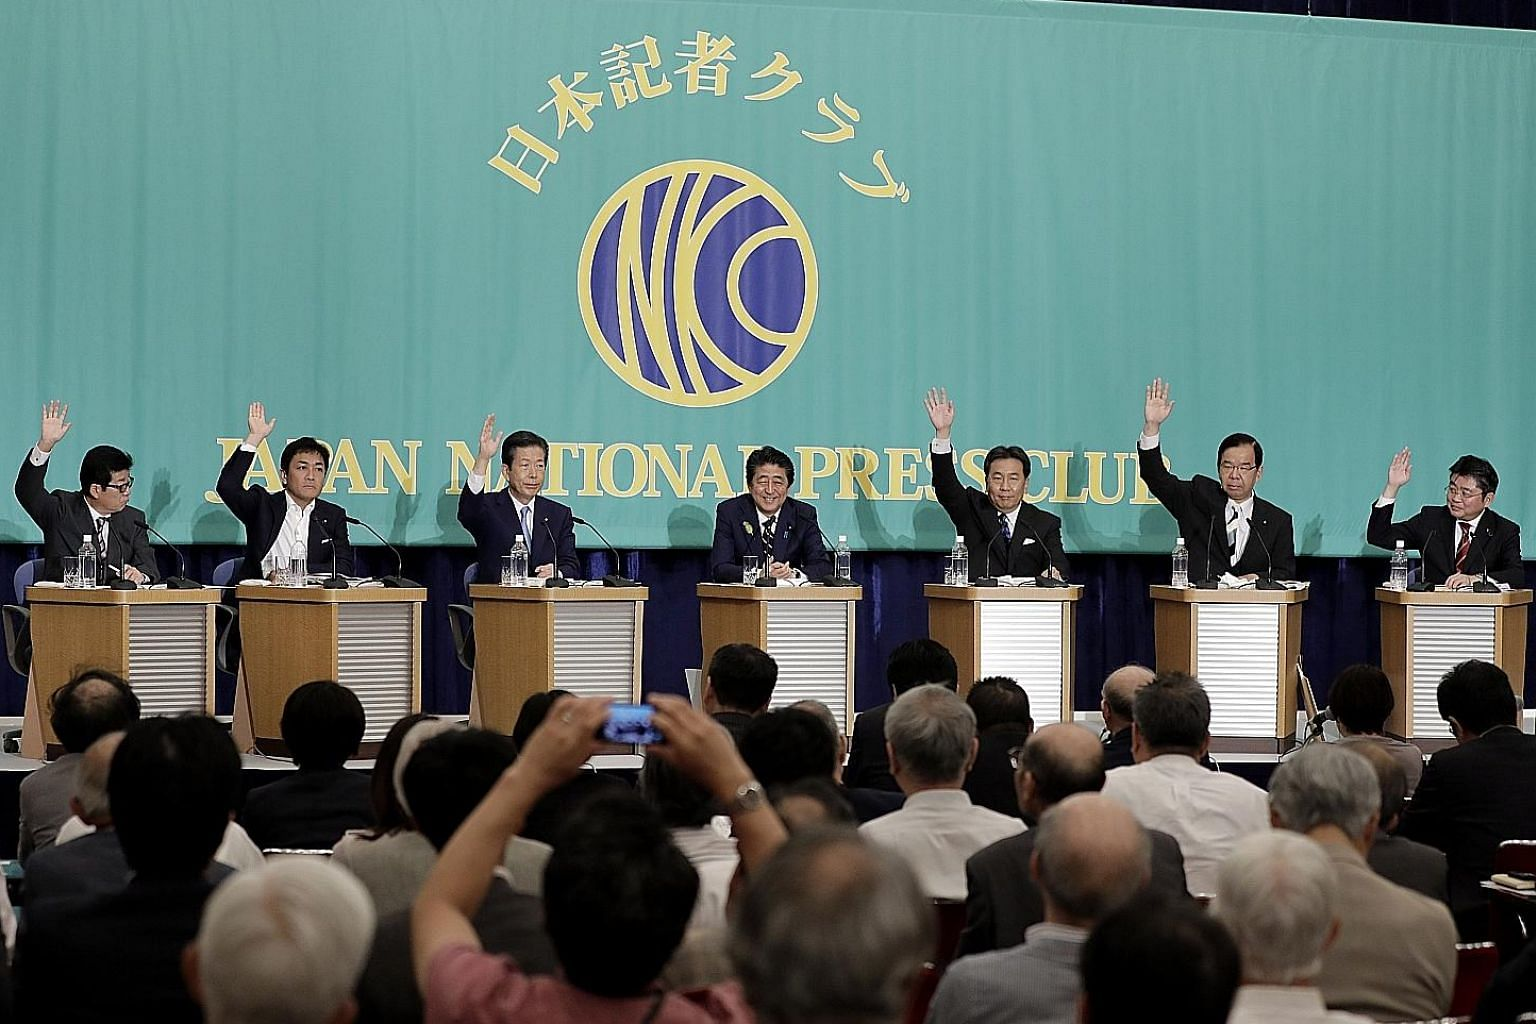 Japanese Prime Minister Shinzo Abe (centre), who is president of the Liberal Democratic Party, with other party leaders during a debate at the Japan National Press Club yesterday, ahead of Nomination Day for the Upper House election. PHOTO: BLOOMBERG